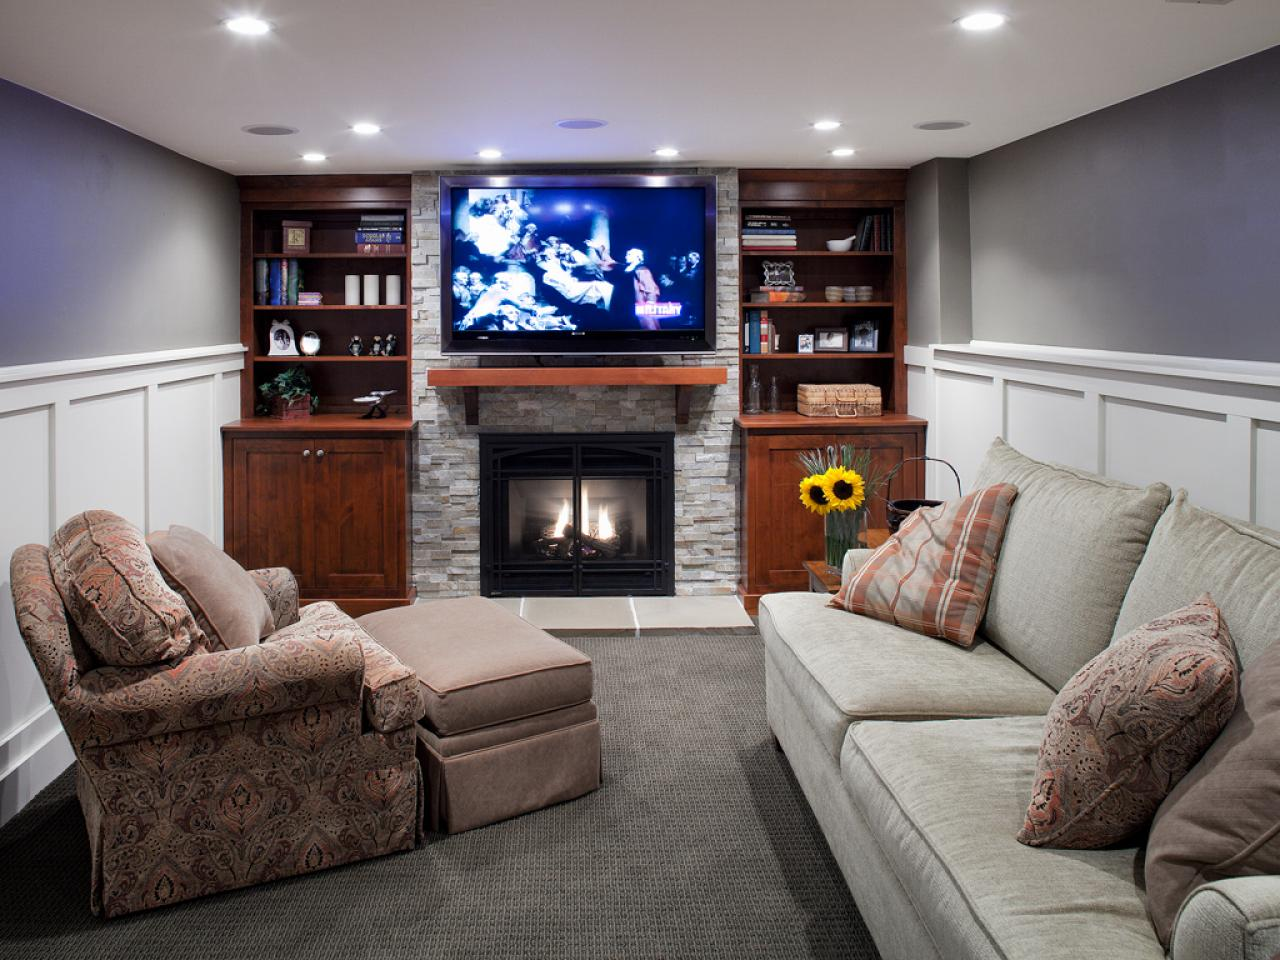 Heating your basement hgtv - Basements ideas ...